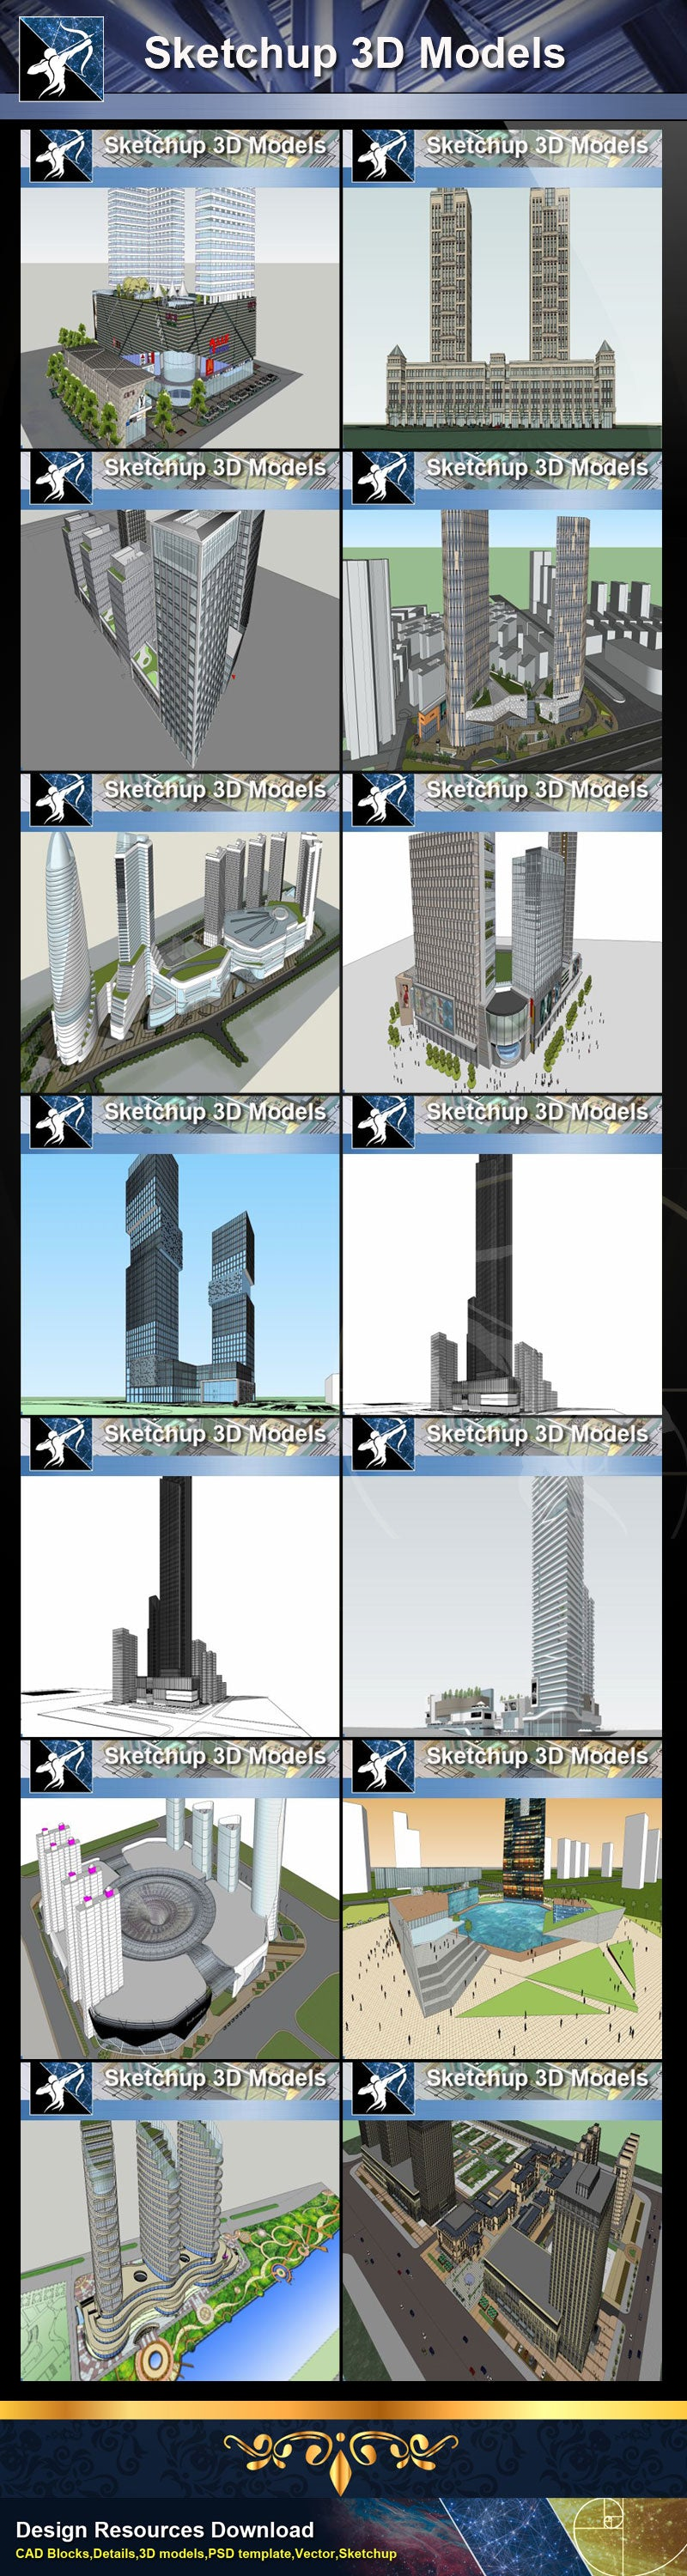 ★★Best 37 Types of Commercial,Shopping Mall Sketchup 3D Models Collection(Recommanded!!)